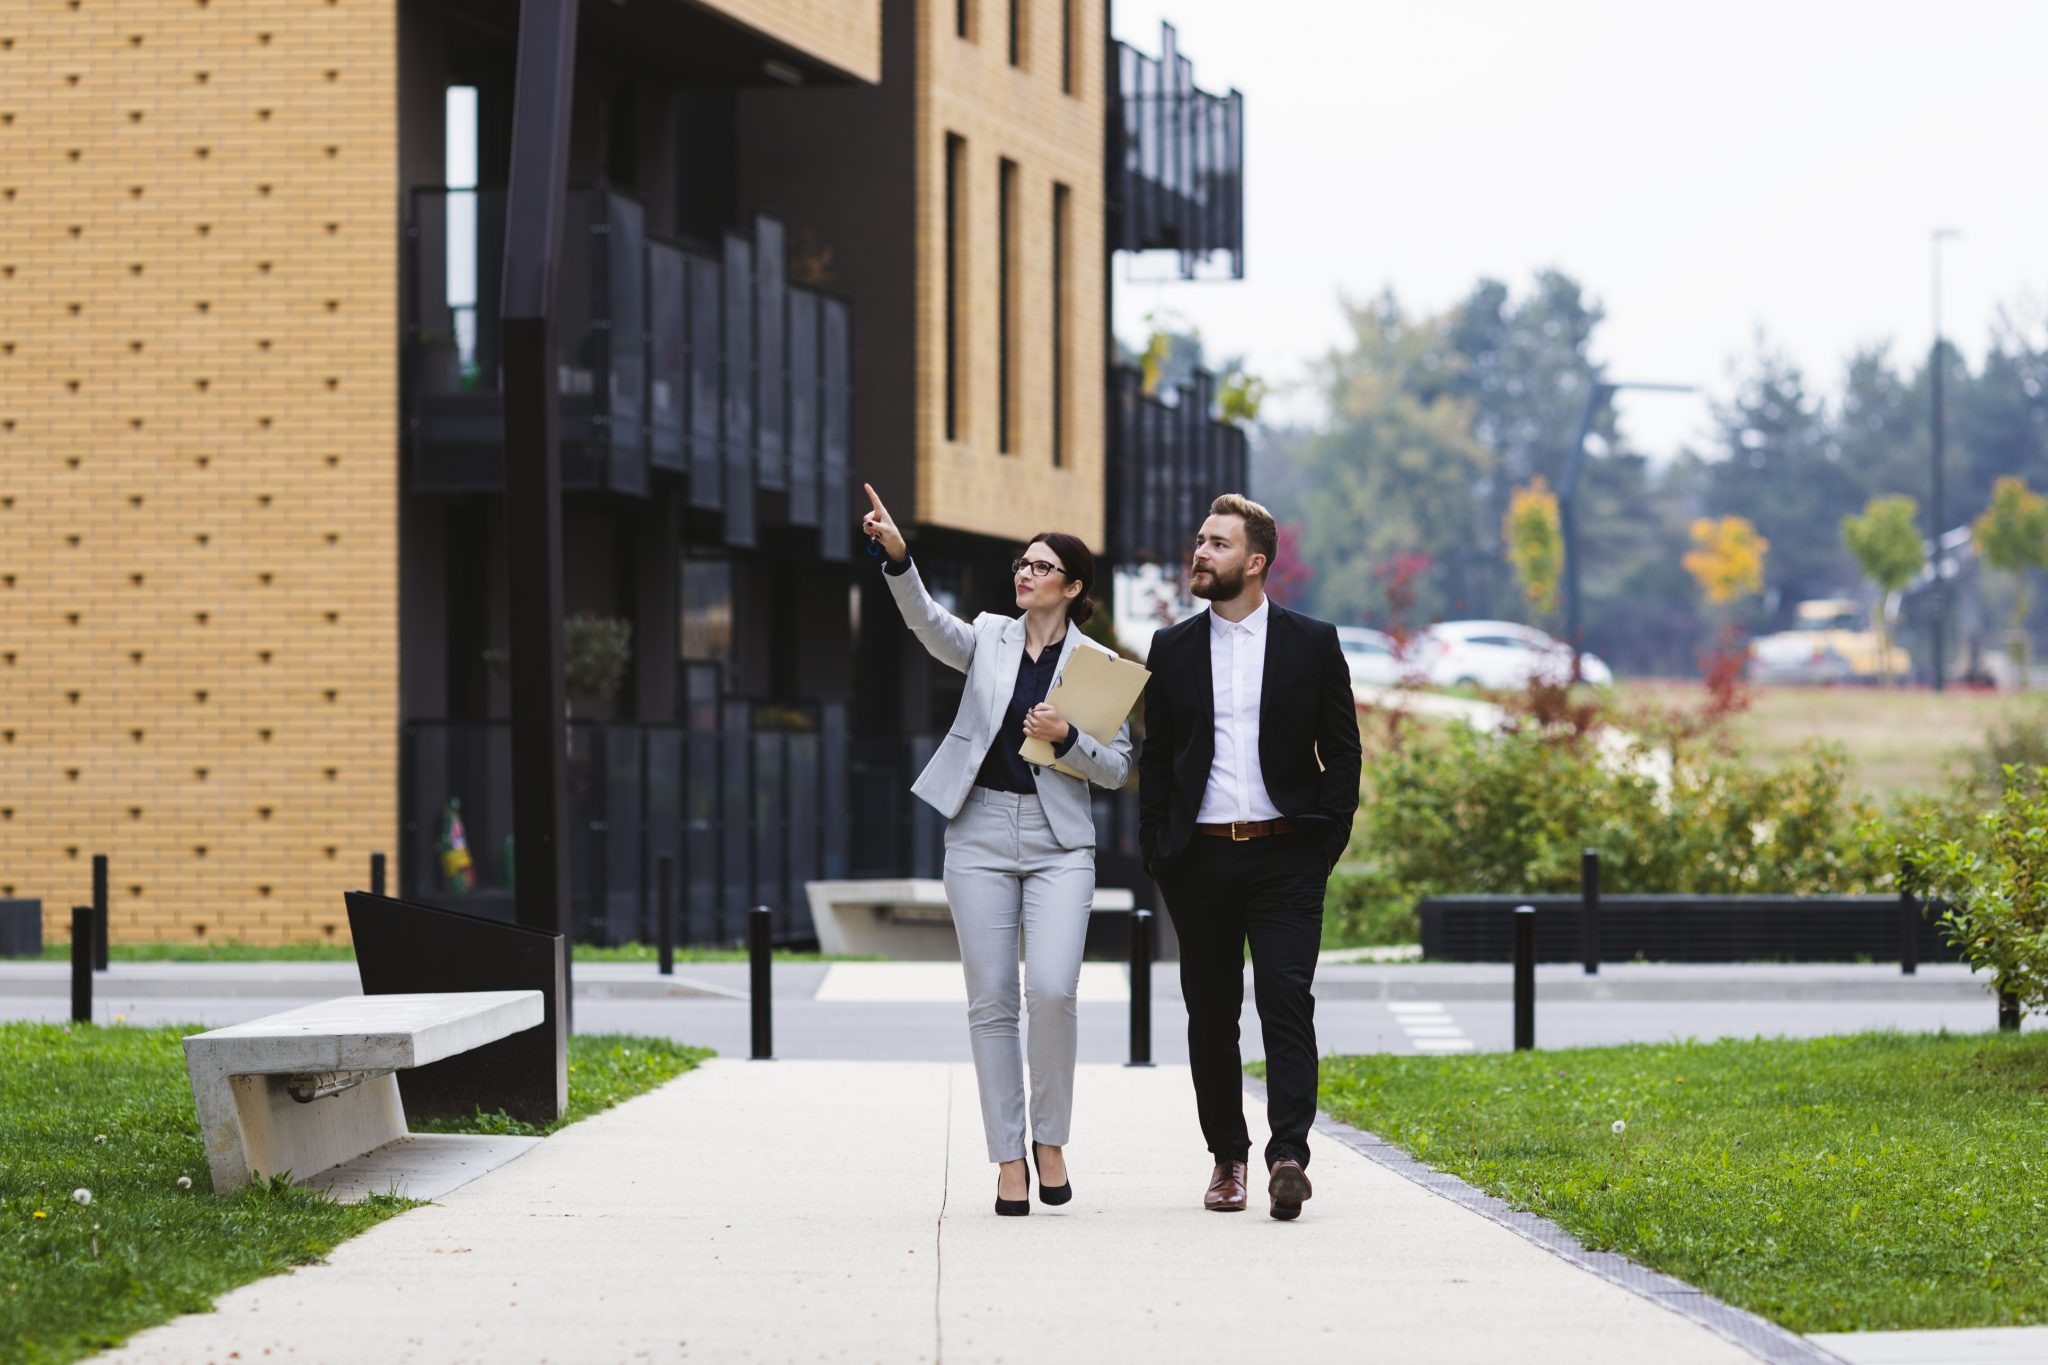 photo of man and woman pointing to building